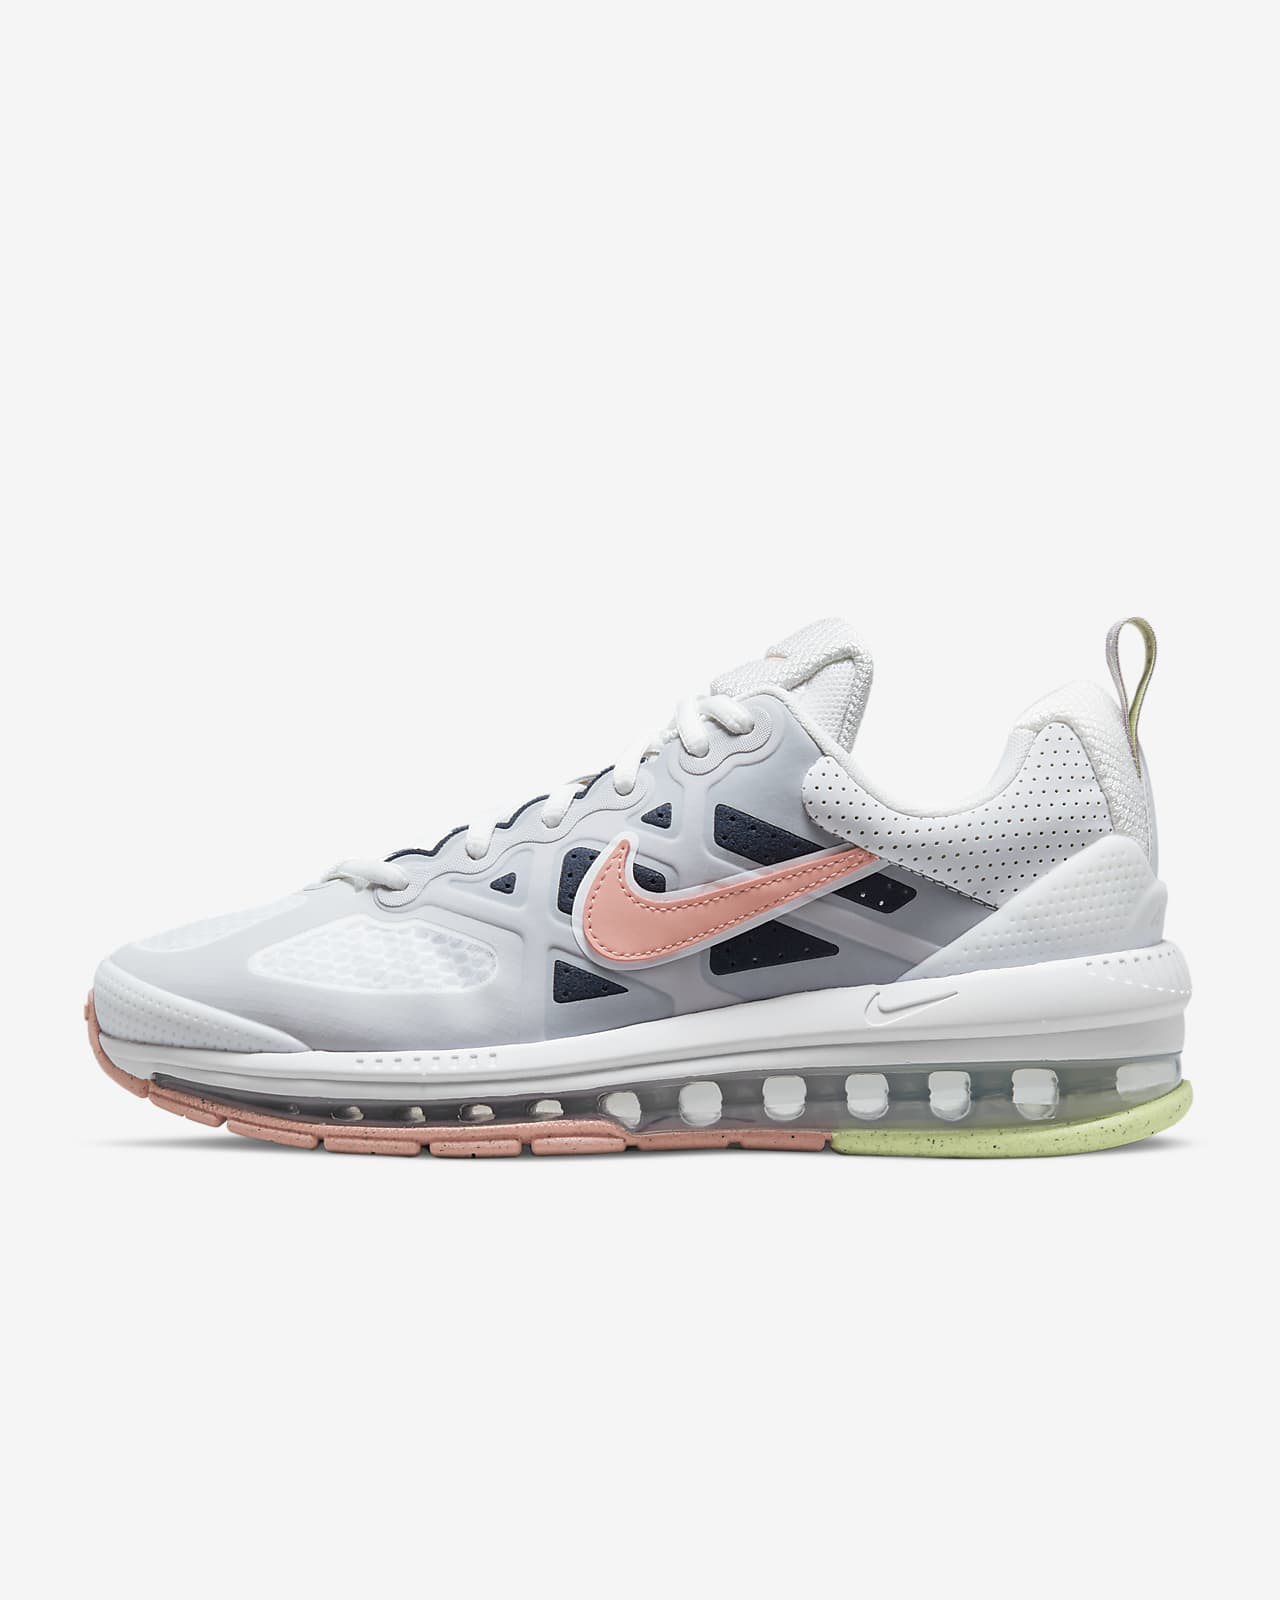 Nike Air Max Genome Women's Shoes